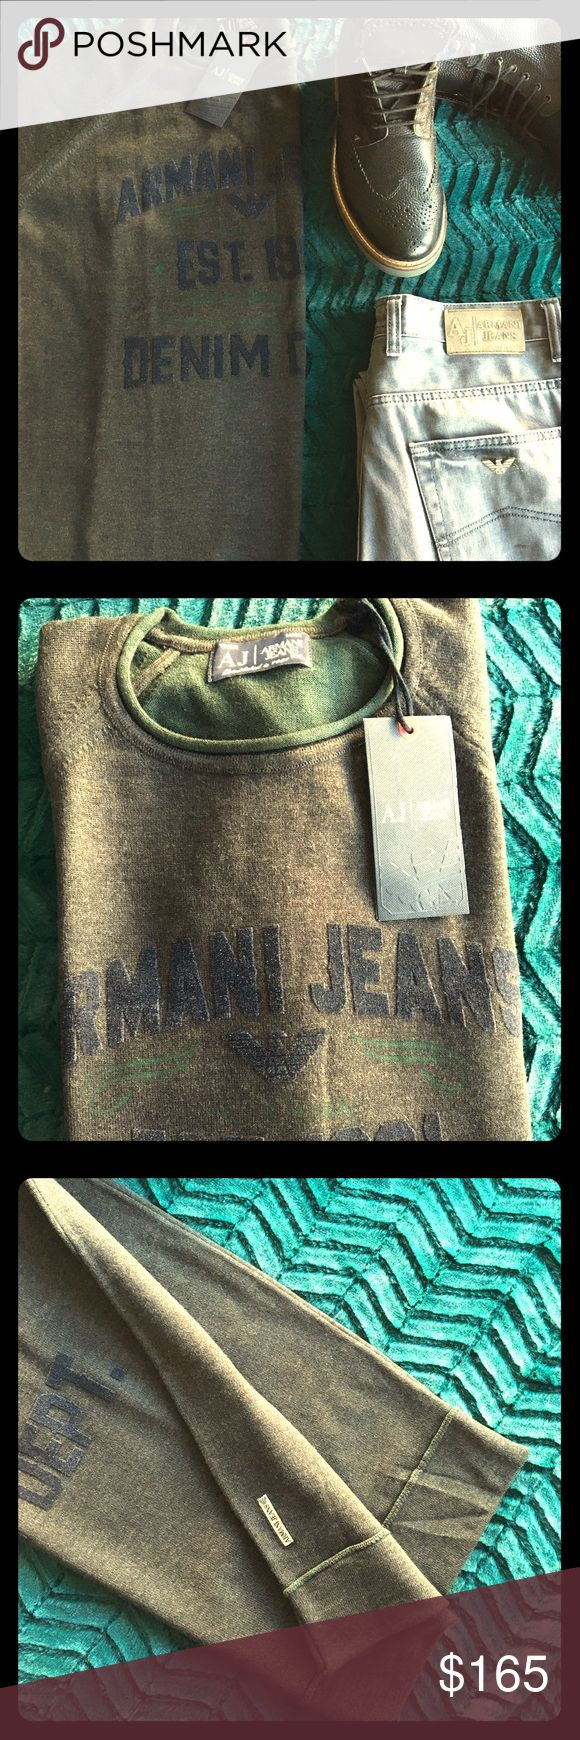 Armani Jeans Sweater Details; Graphic at the front elevates this casual crewneck from Armani Jeans into a super stylish addition to your Sweater.  Crew neck Graphic print at front 100% Cotton Hand wash Imported Armani Jeans Sweaters Crewneck